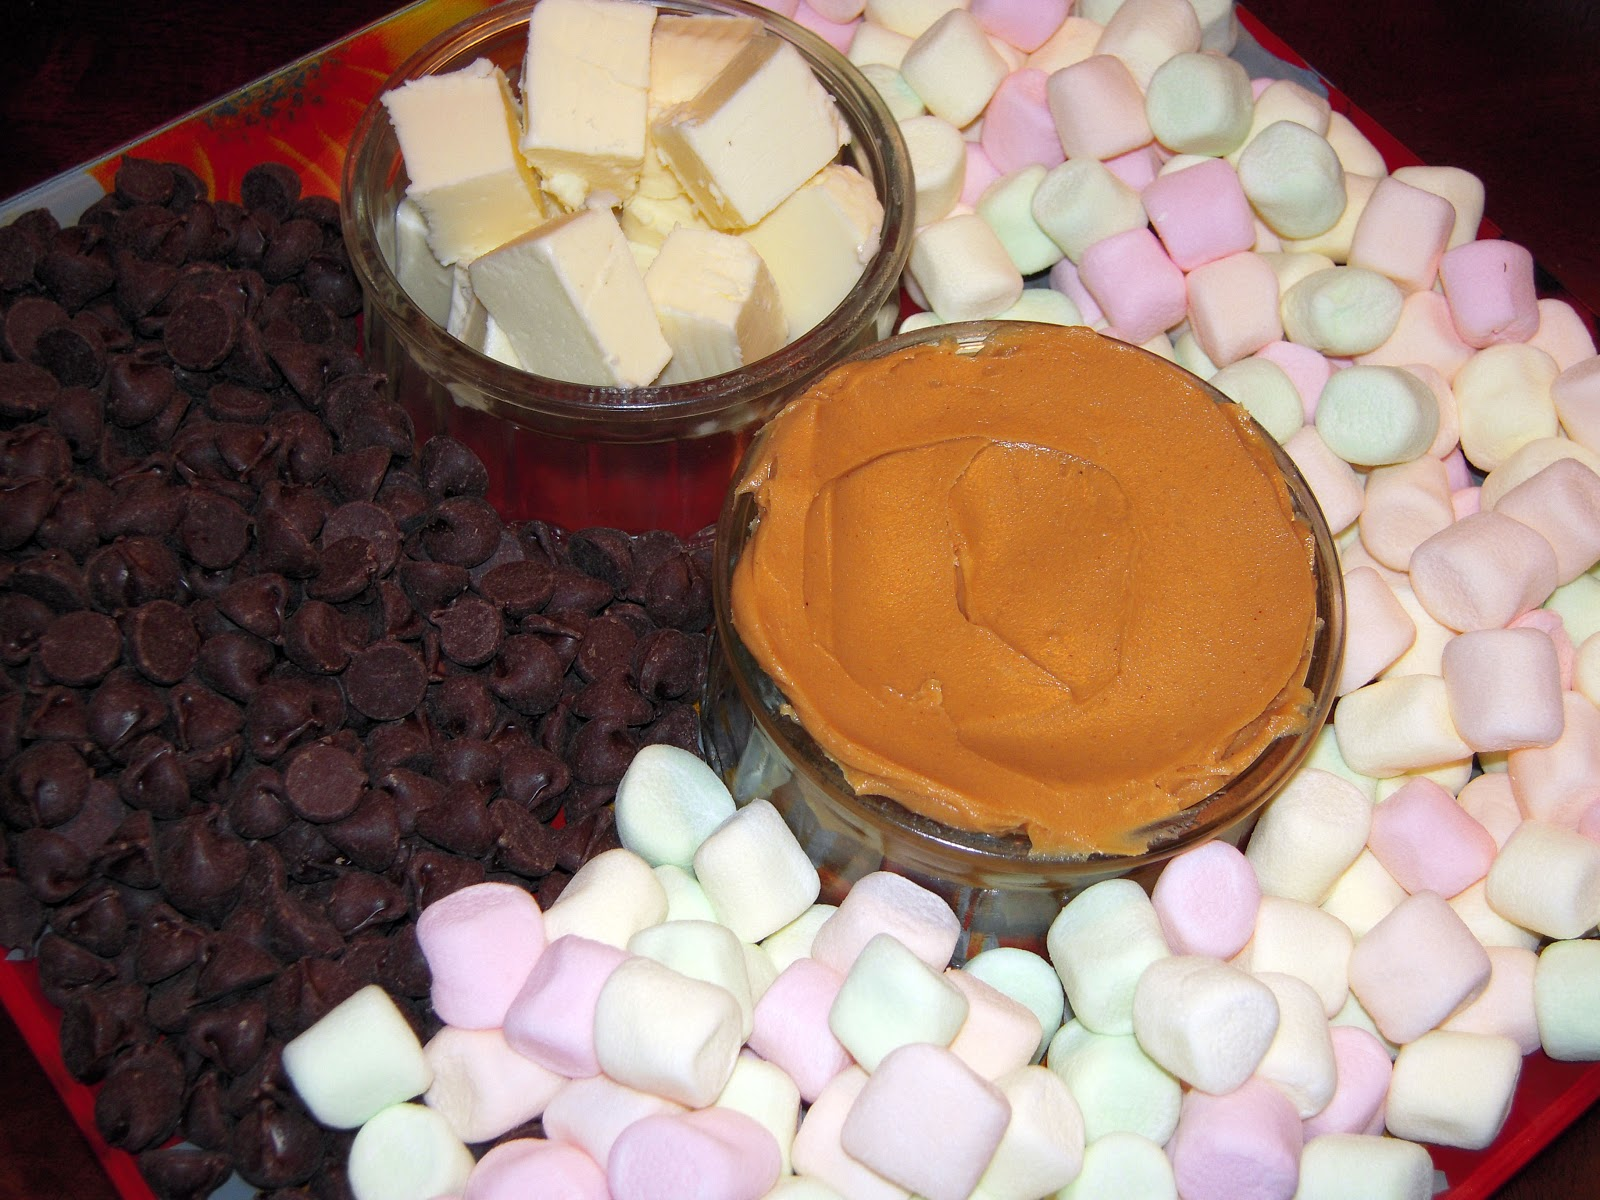 Συνταγες Για ΠΑΙΔΙΚΑ Παρτυ http://cookandfeed.blogspot.com/2011/10/chocolate-confetti-marshmallows.html